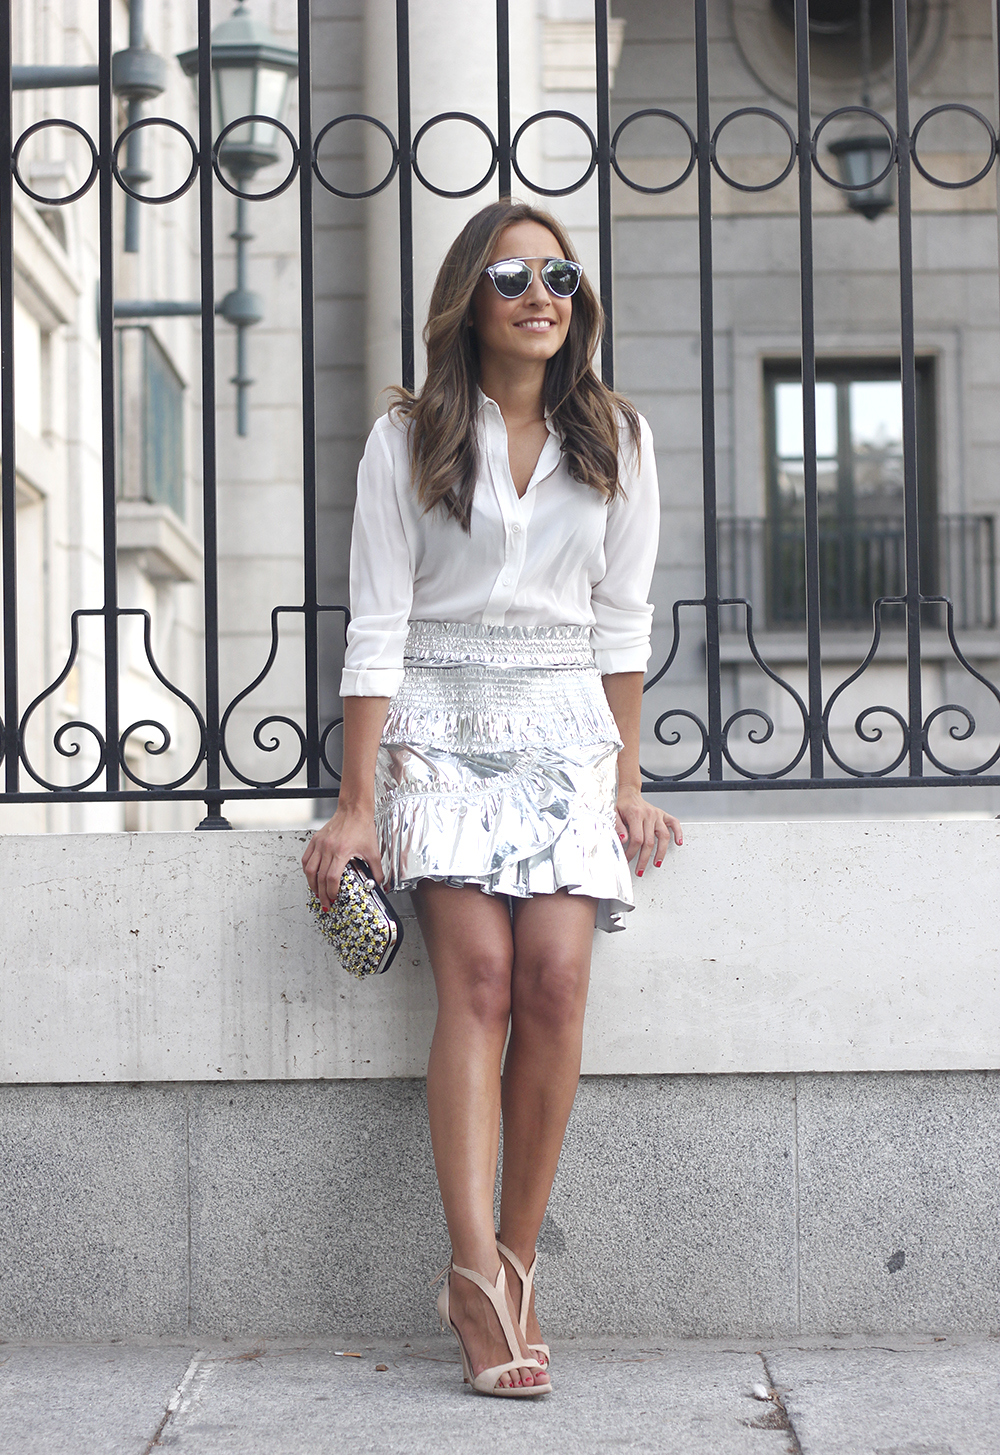 Isabel Marant Metallic Skirt white shirt nude sandals dior so real sunnies outfit style fashion02